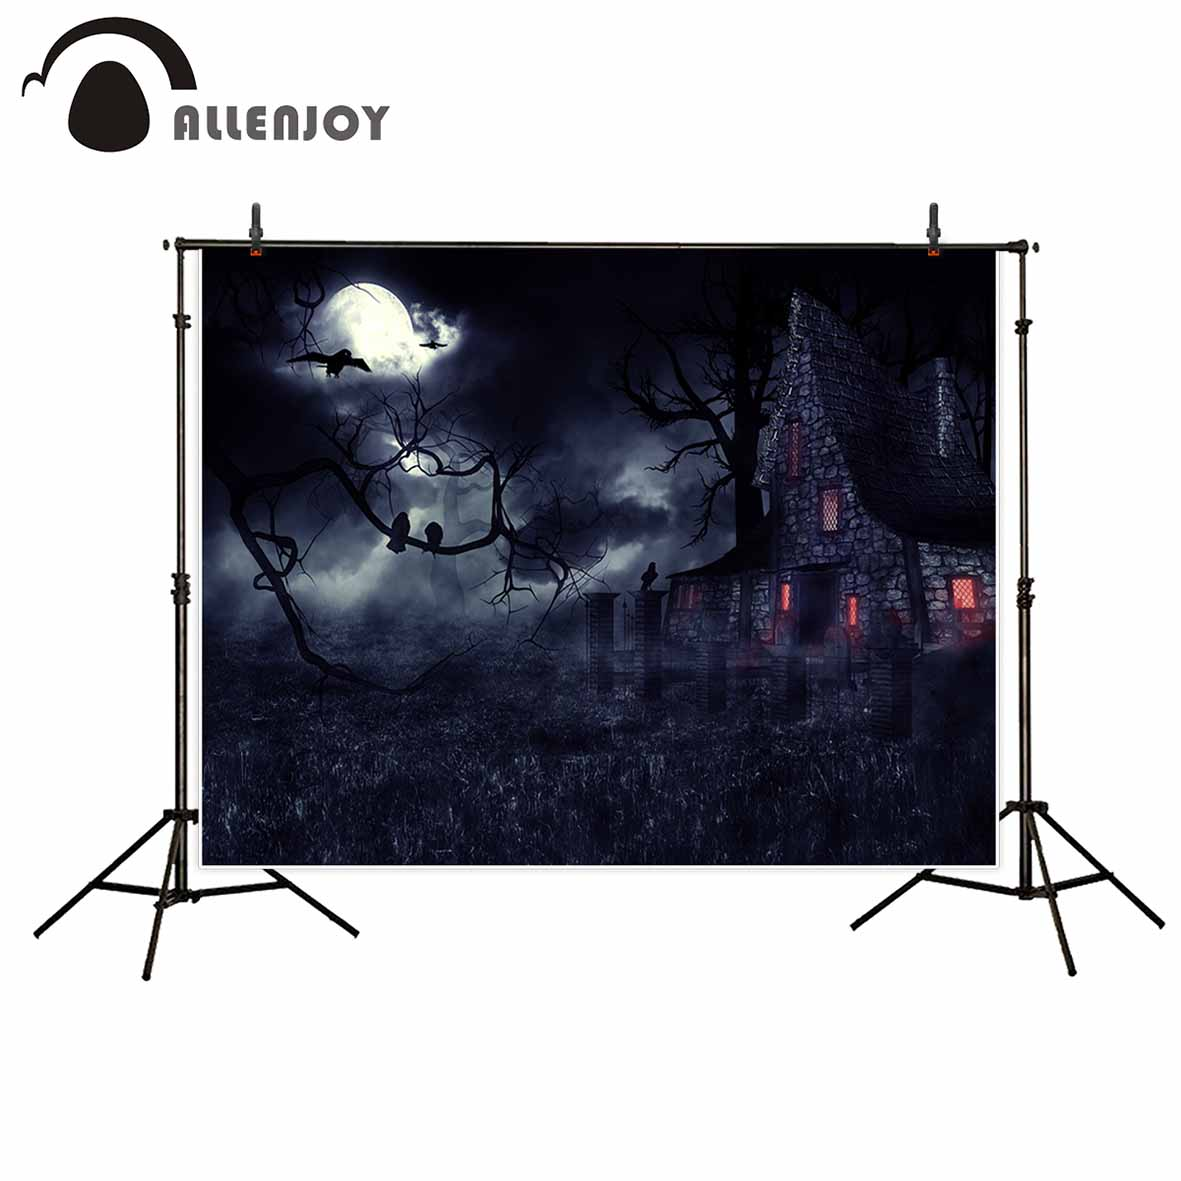 Allenjoy vinyl newborn photography background Crows Haunted house Darkness moon Halloween photo studio photobooth high quality life size scary severed head party decoration haunted house halloween props